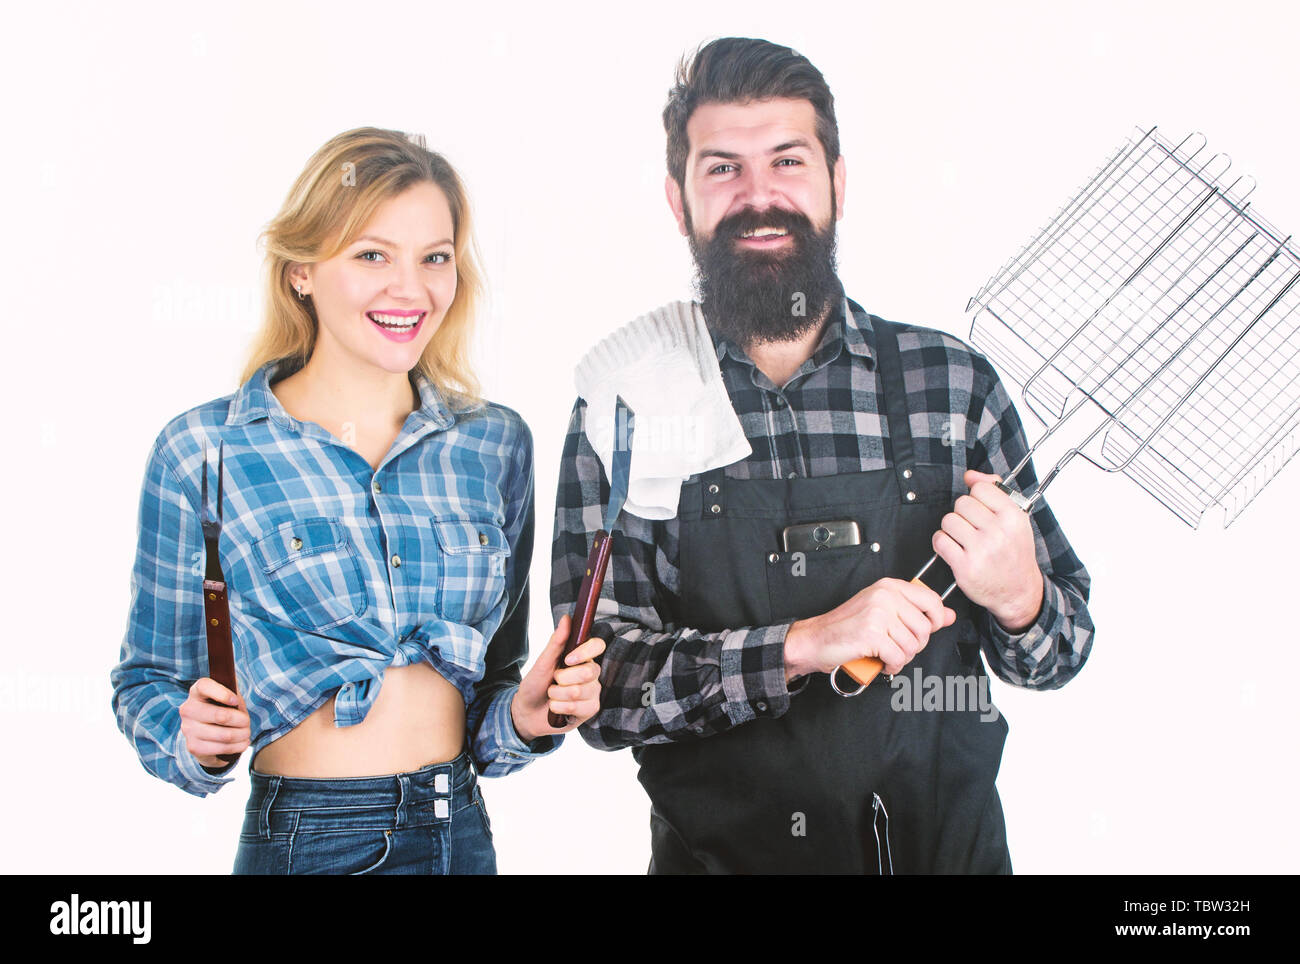 Do it yourself. Having barbecue party. Happy couple ready for cooking barbecue. Man and woman holding barbecue grill. Using barbecue set. - Stock Image